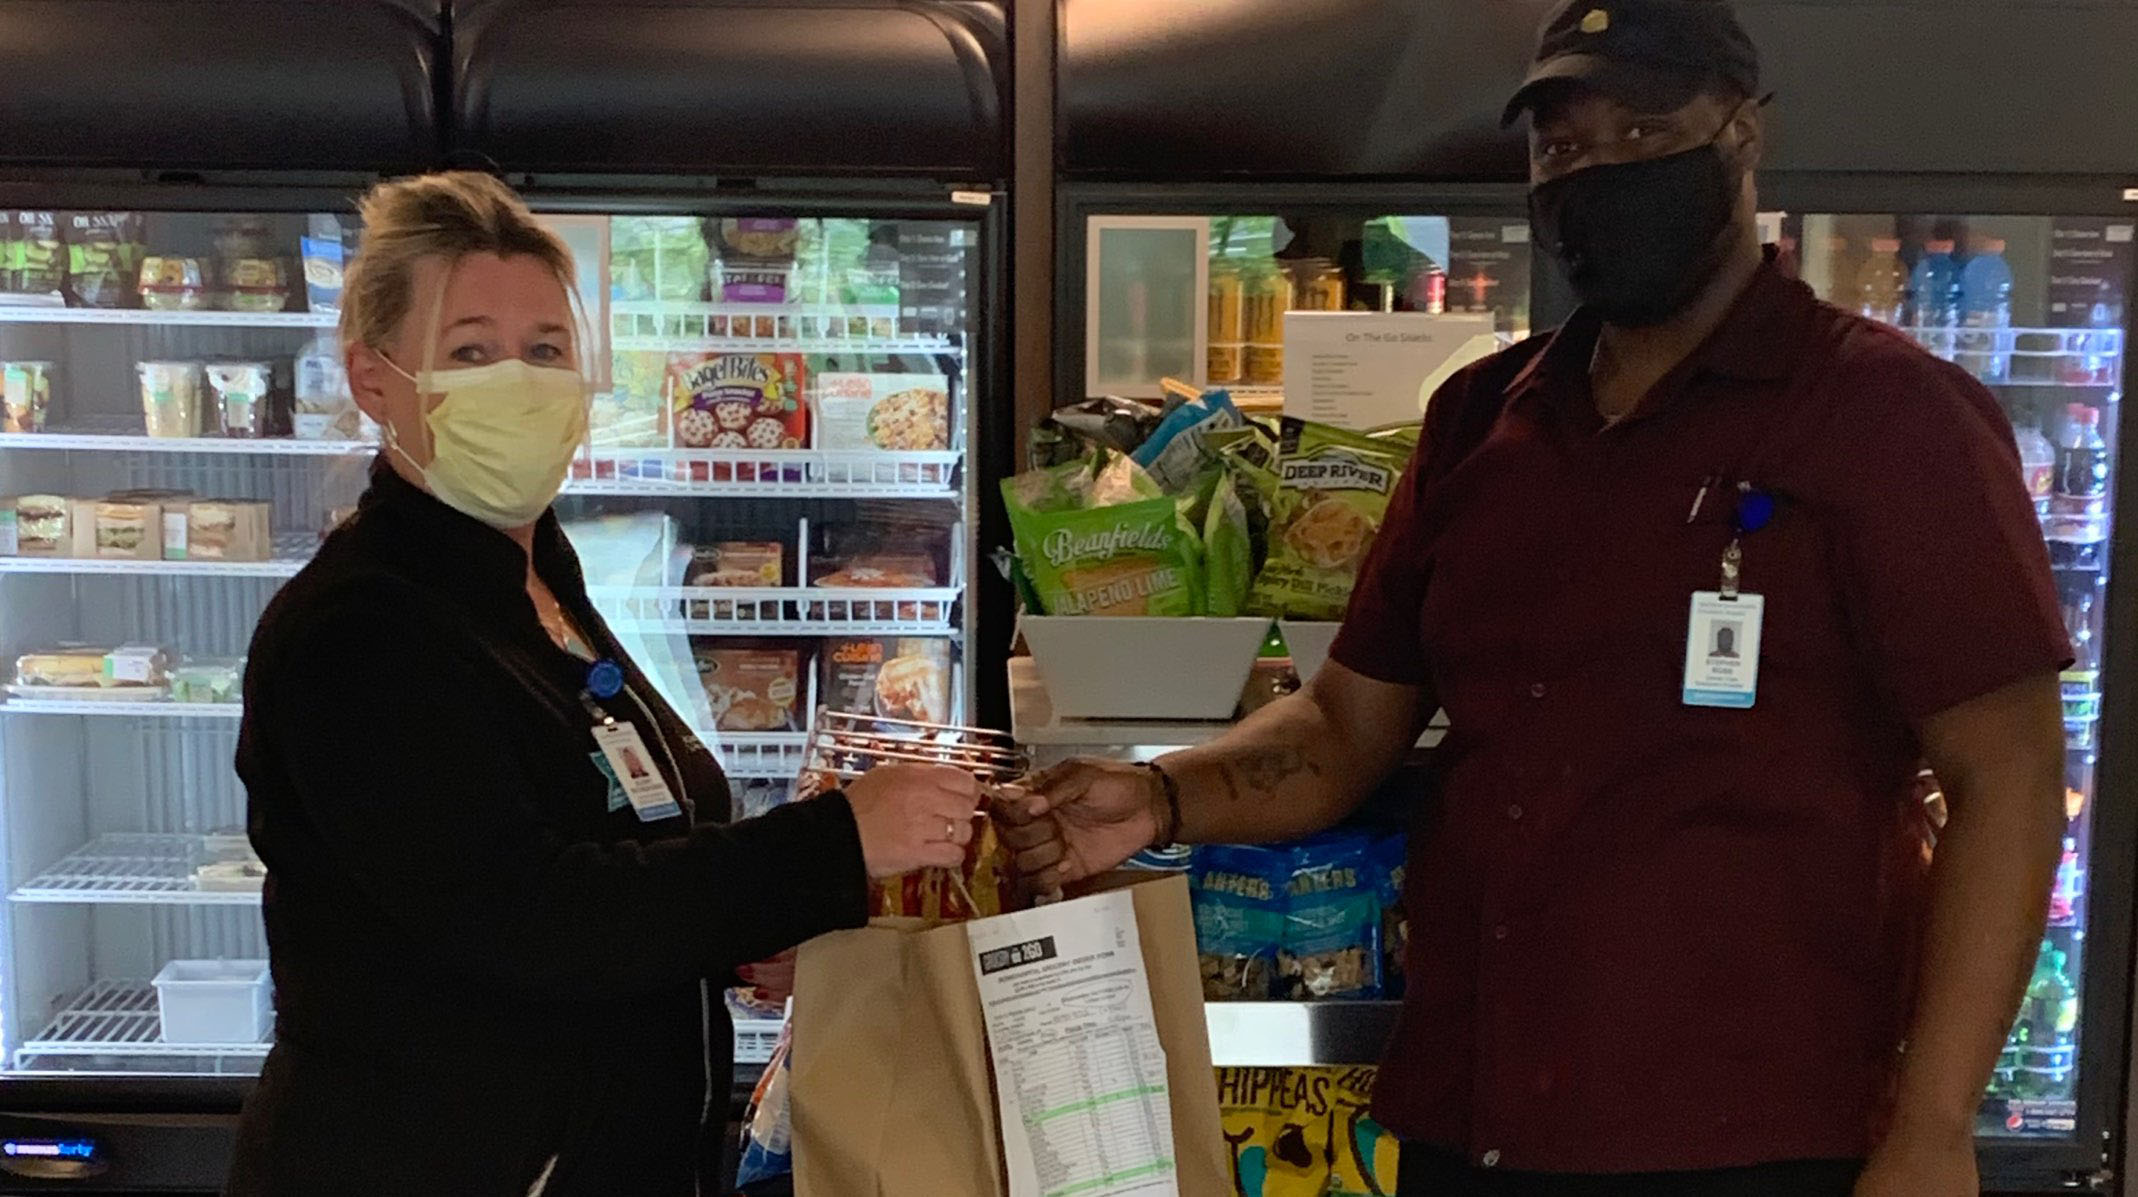 Greenwich Hospital health care worker receiving groceries